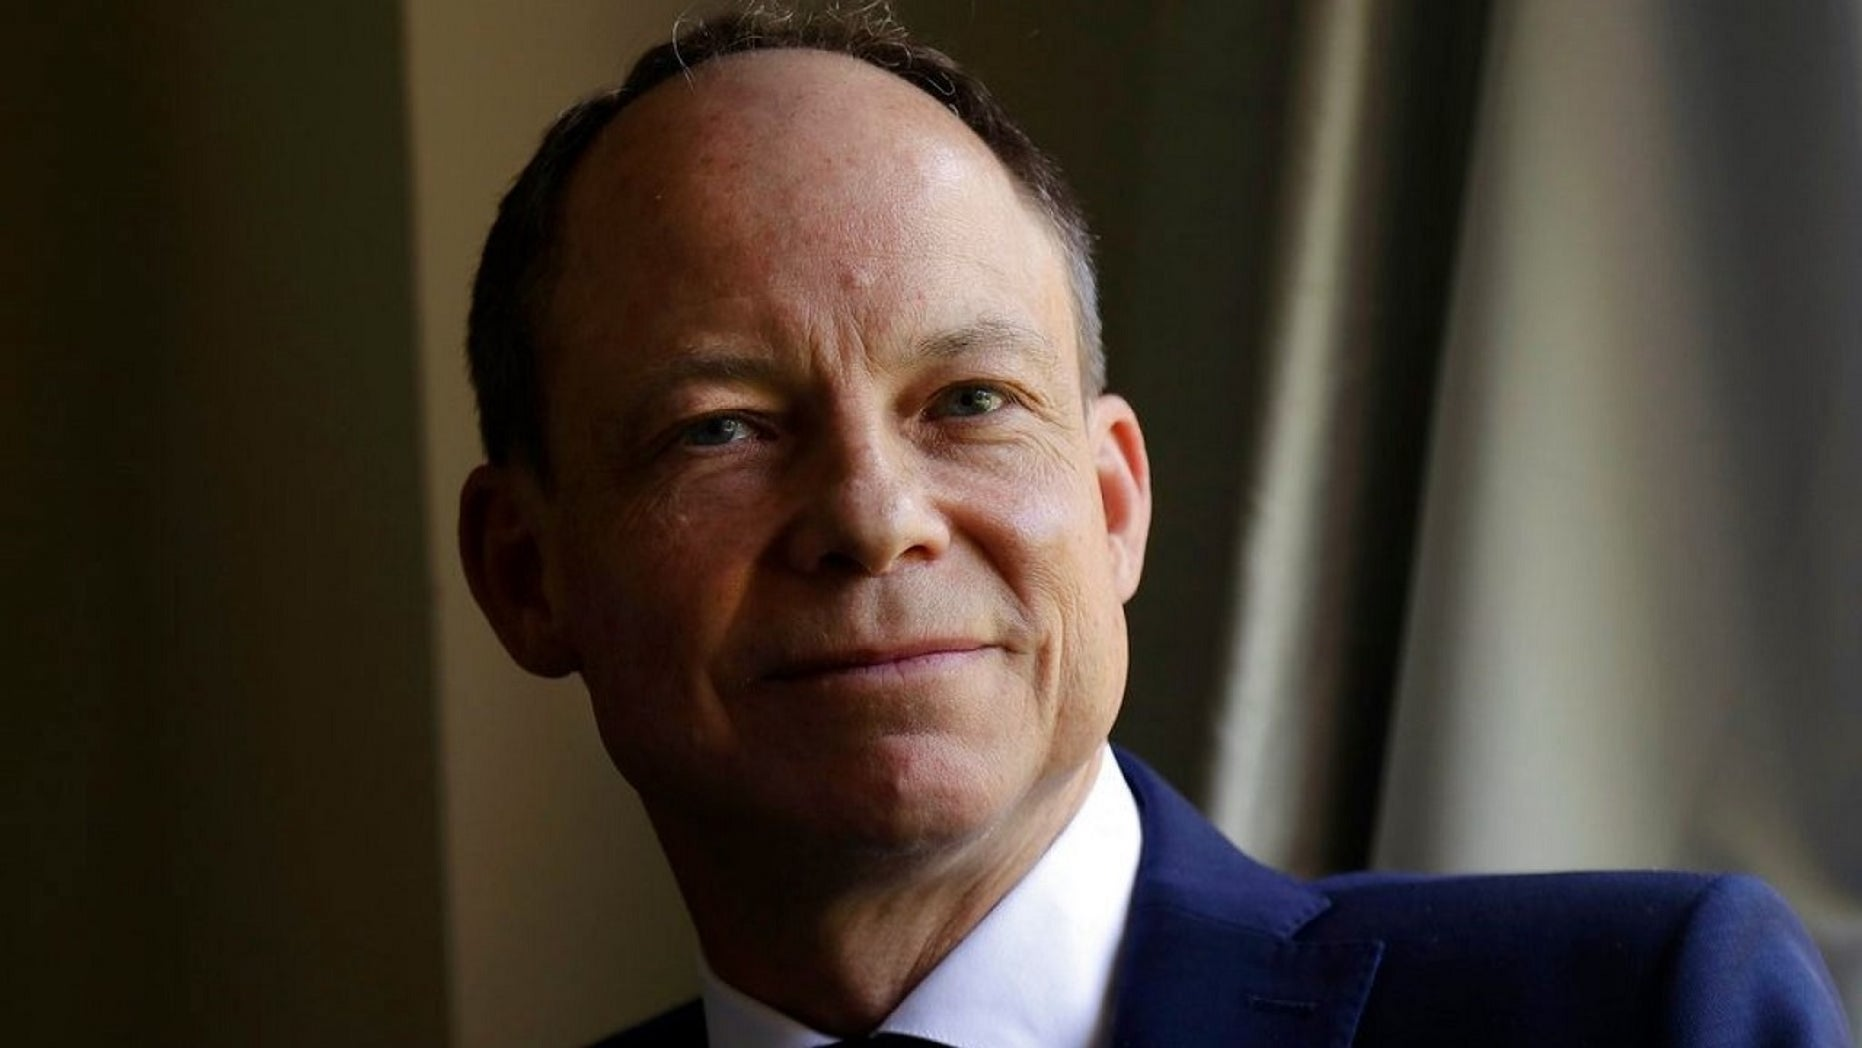 Former Santa Clara County Superior Court Judge Aaron Persky is asking supporters to help him pay off $135,000 in attorney's fees